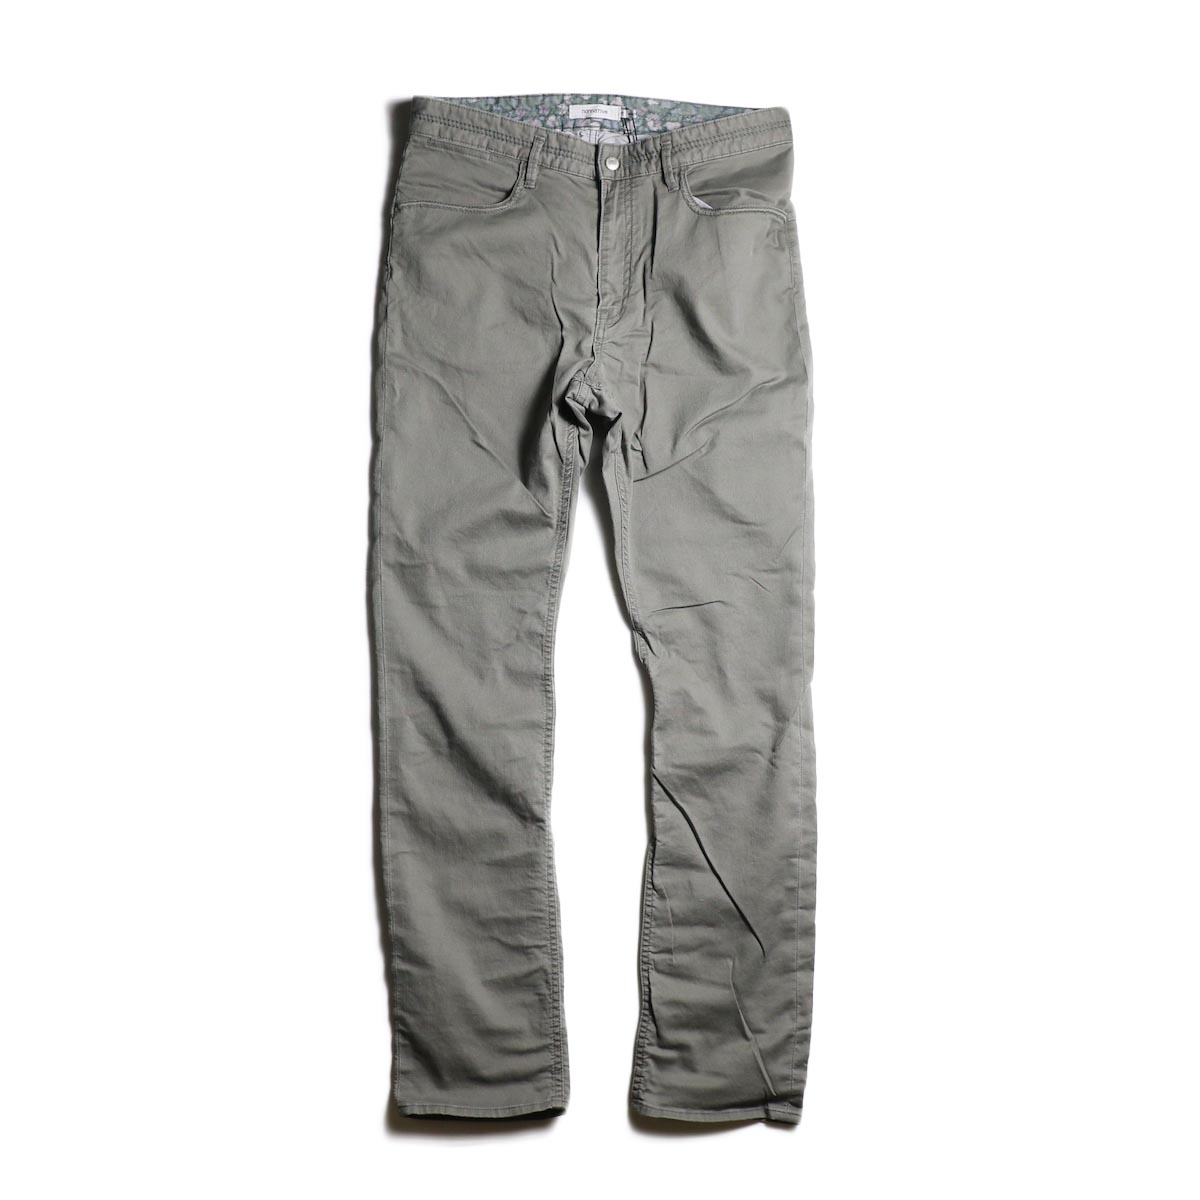 nonnative / DWELLER 5P JEANS DROPPED FIT C/P JEAN CORD STRETCH (Gray)